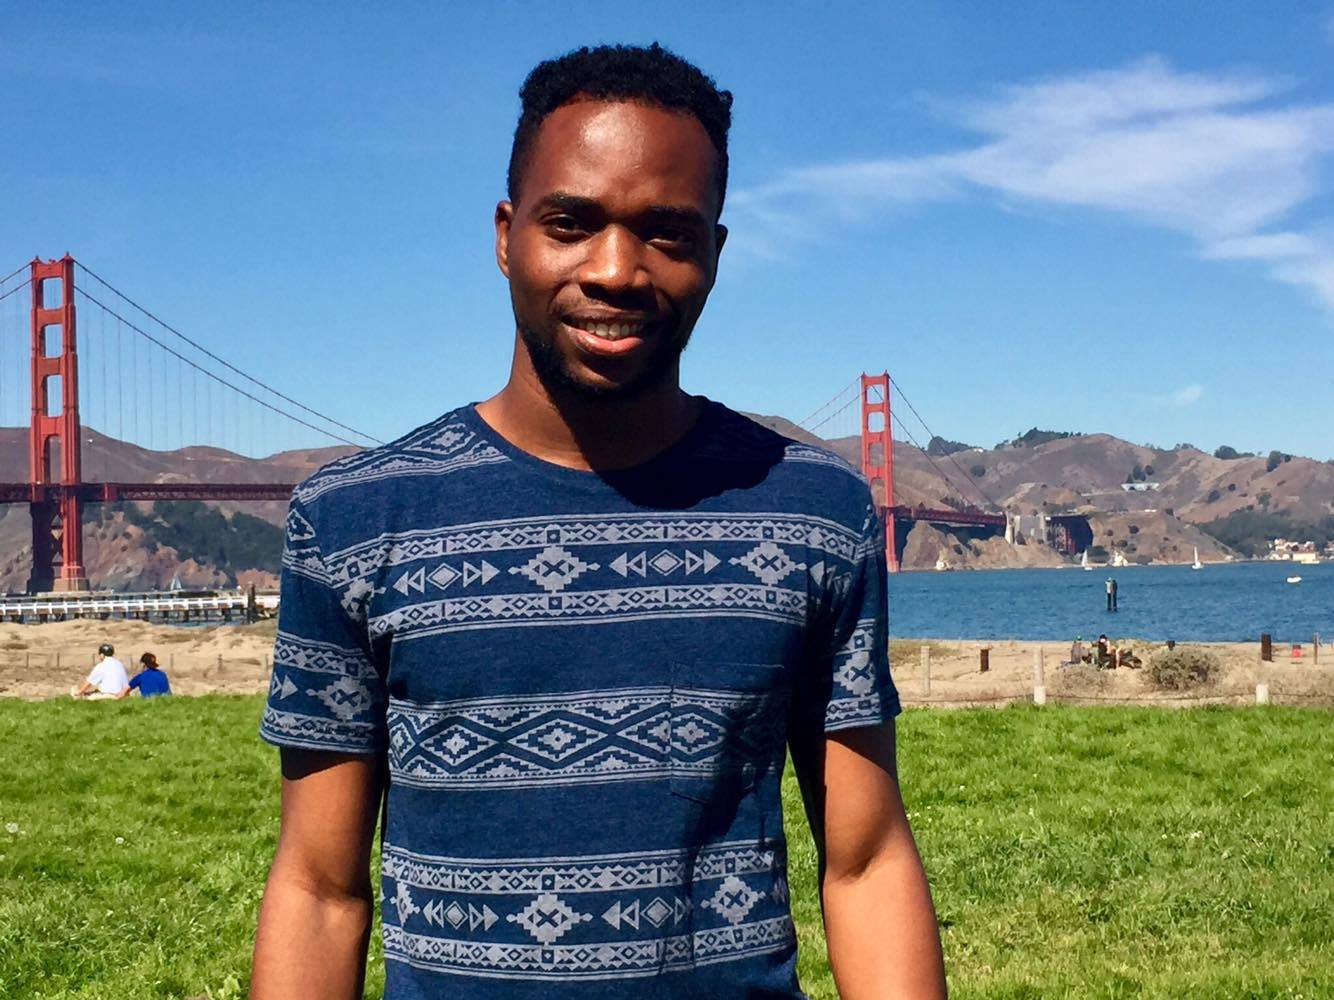 From Nigeria to Silicon Valley: Life of a Software Development Engineer